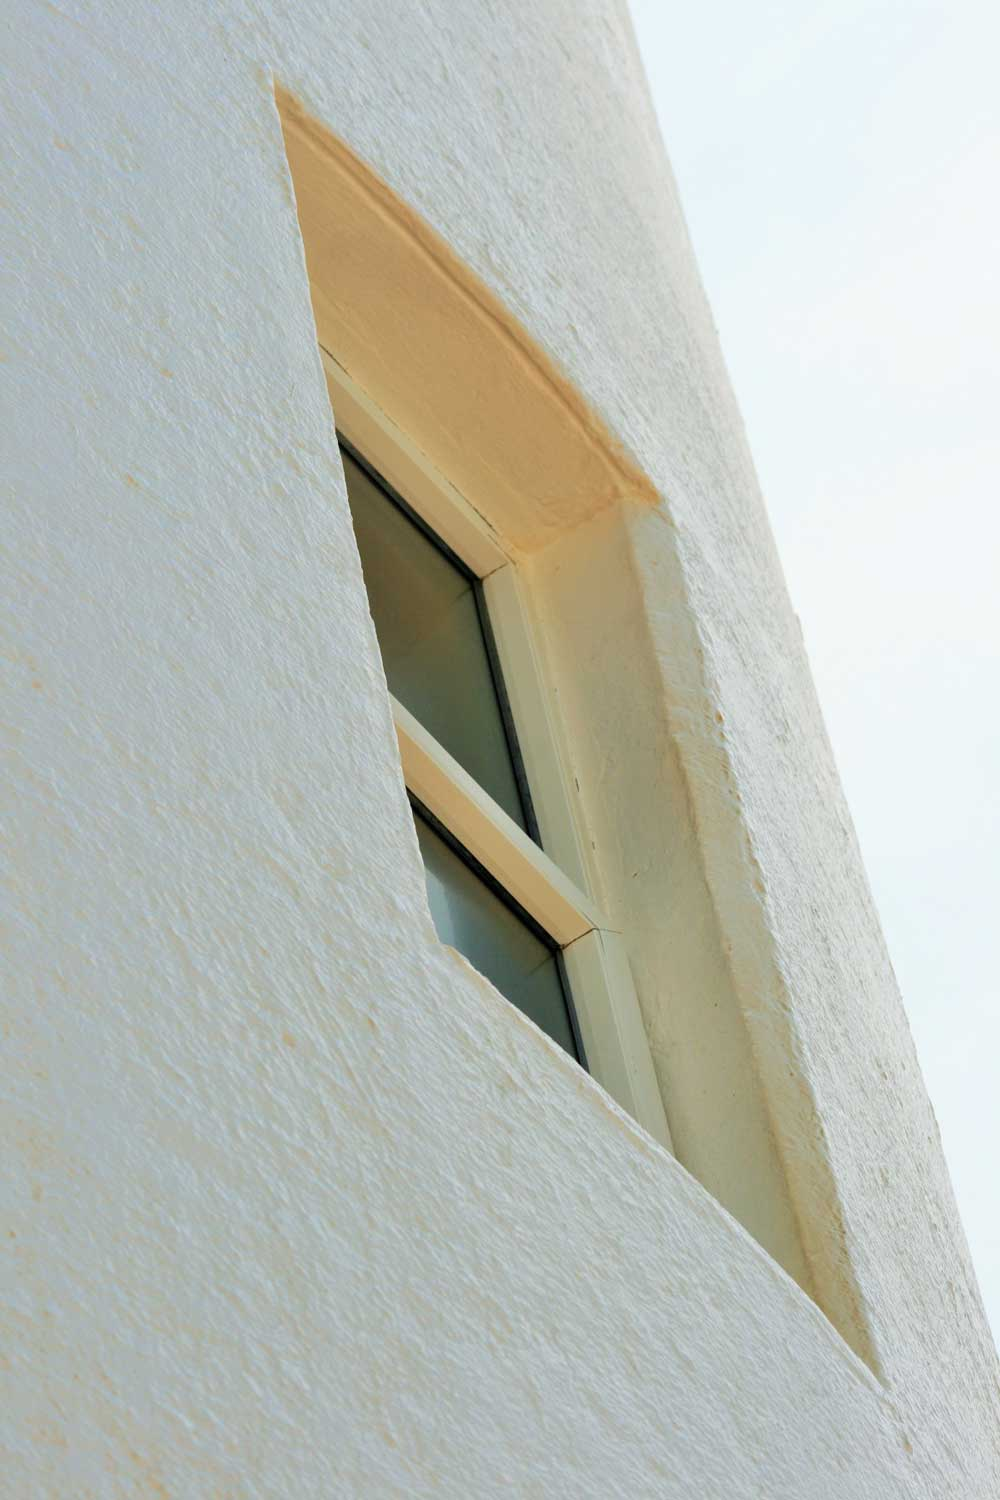 Close-up, angled view of a window on a white building.